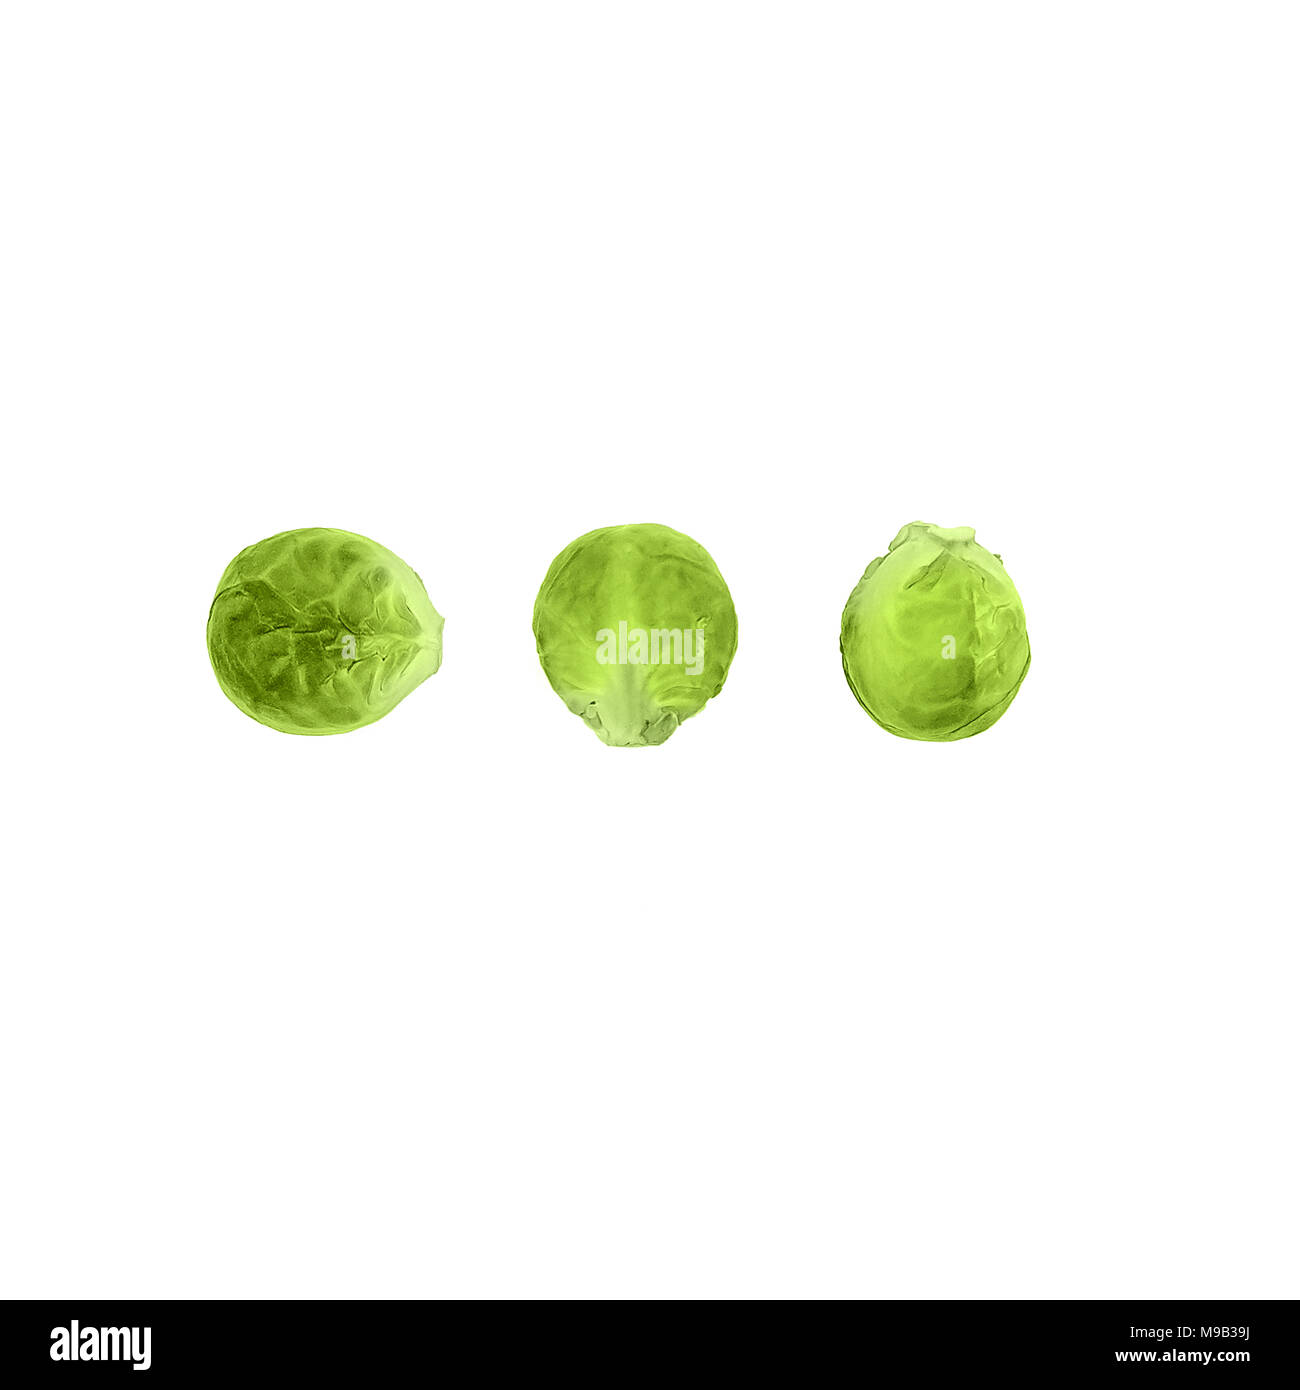 Cabbage Flat lay photo - Stock Image